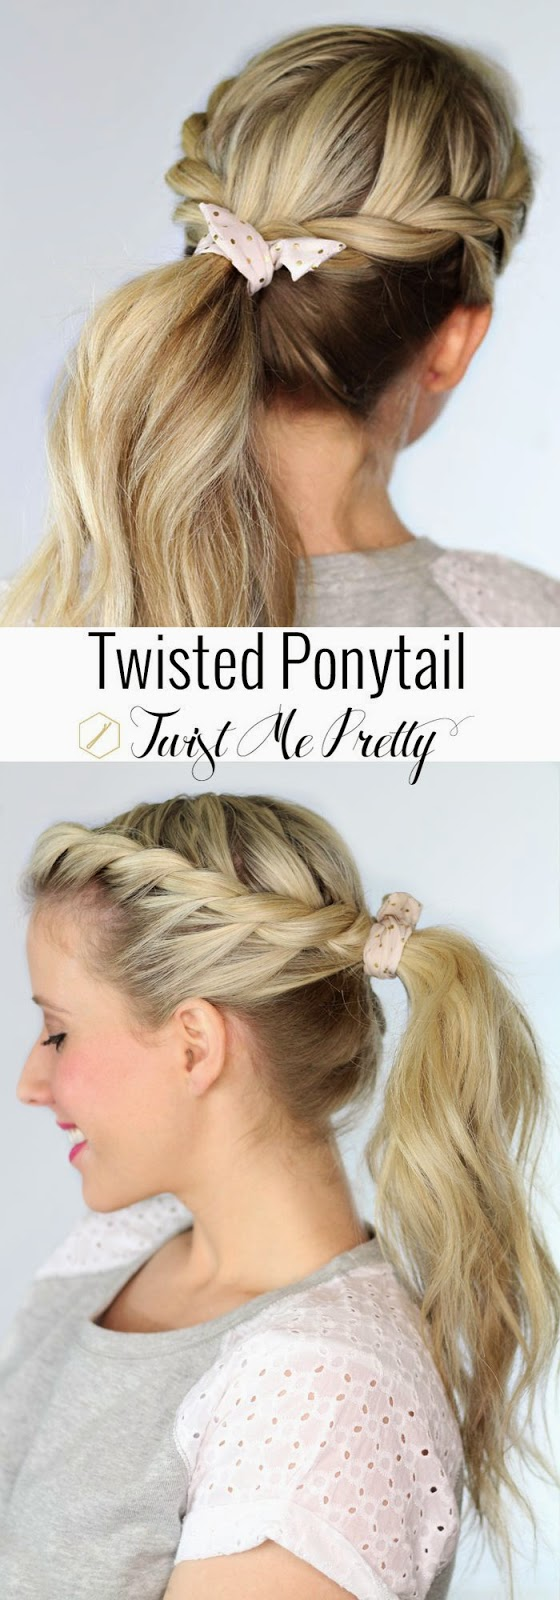 TOP 5 FASHIONABLE PONYTAIL TUTORIALS